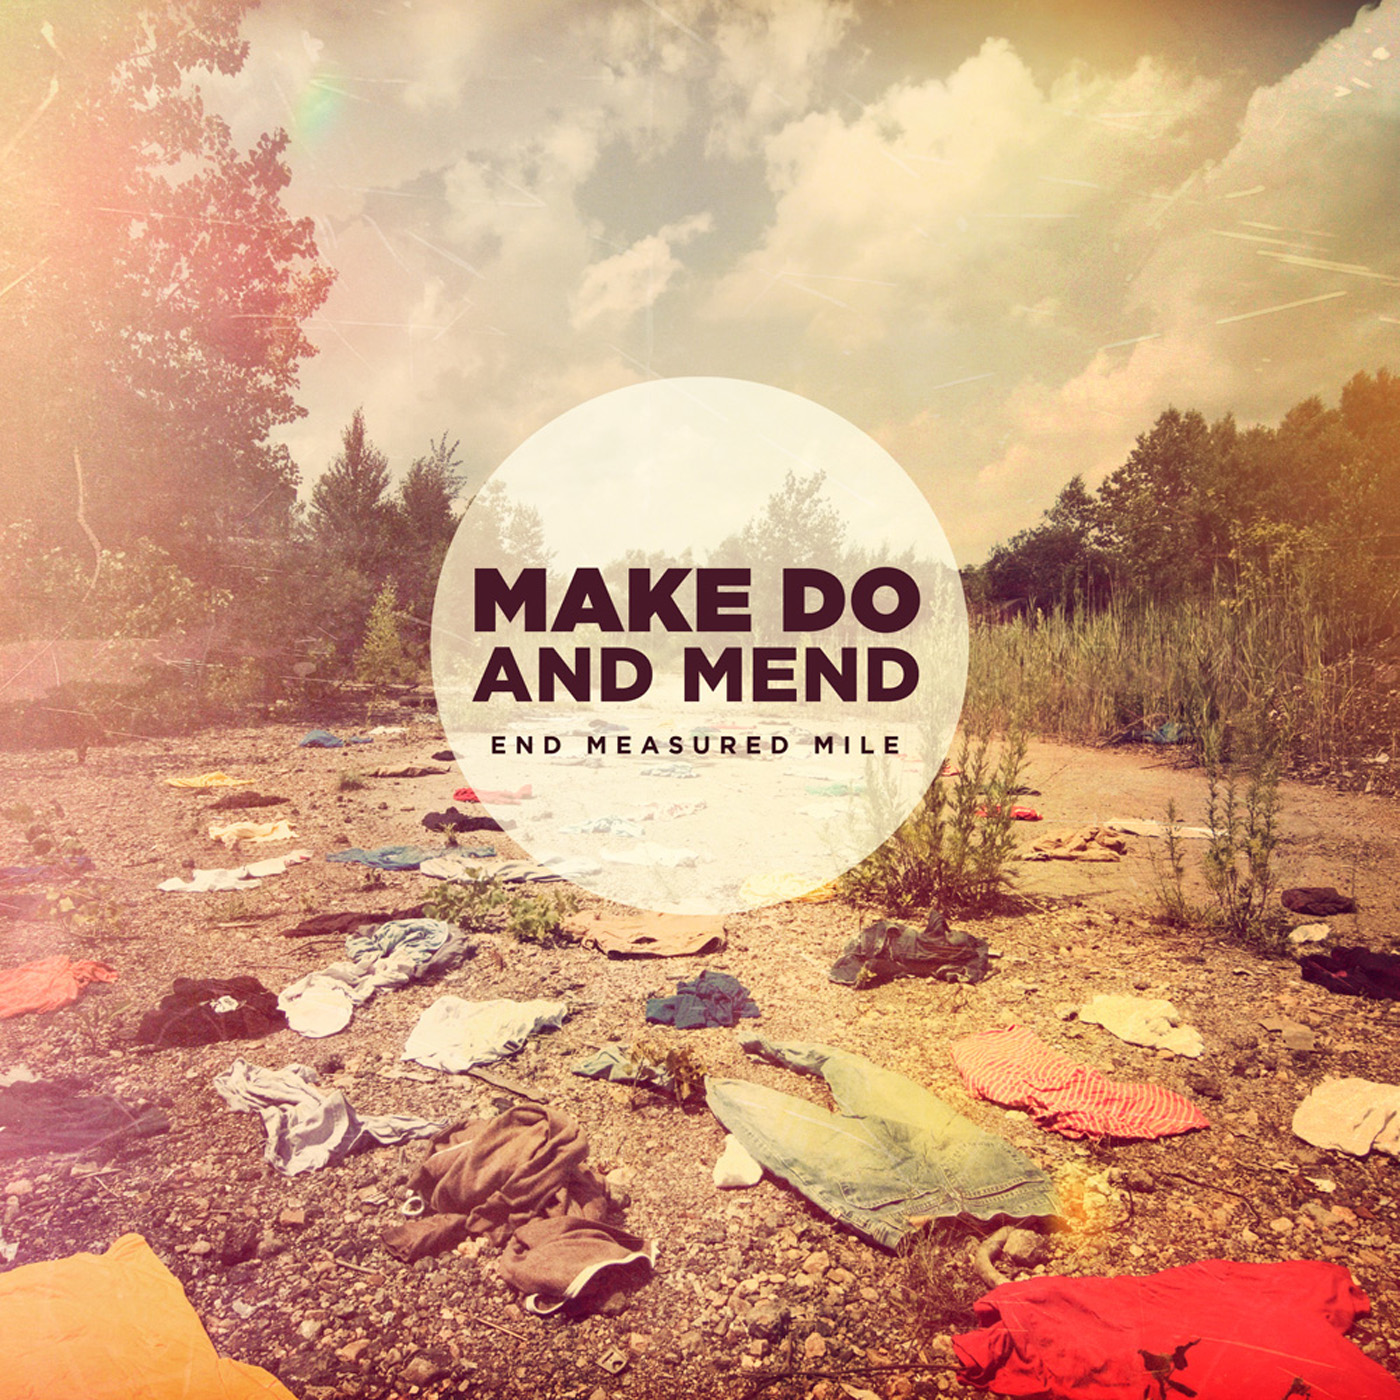 Make Do And Mend - End Measured Mile (Digital Only - MP3 or FLAC)